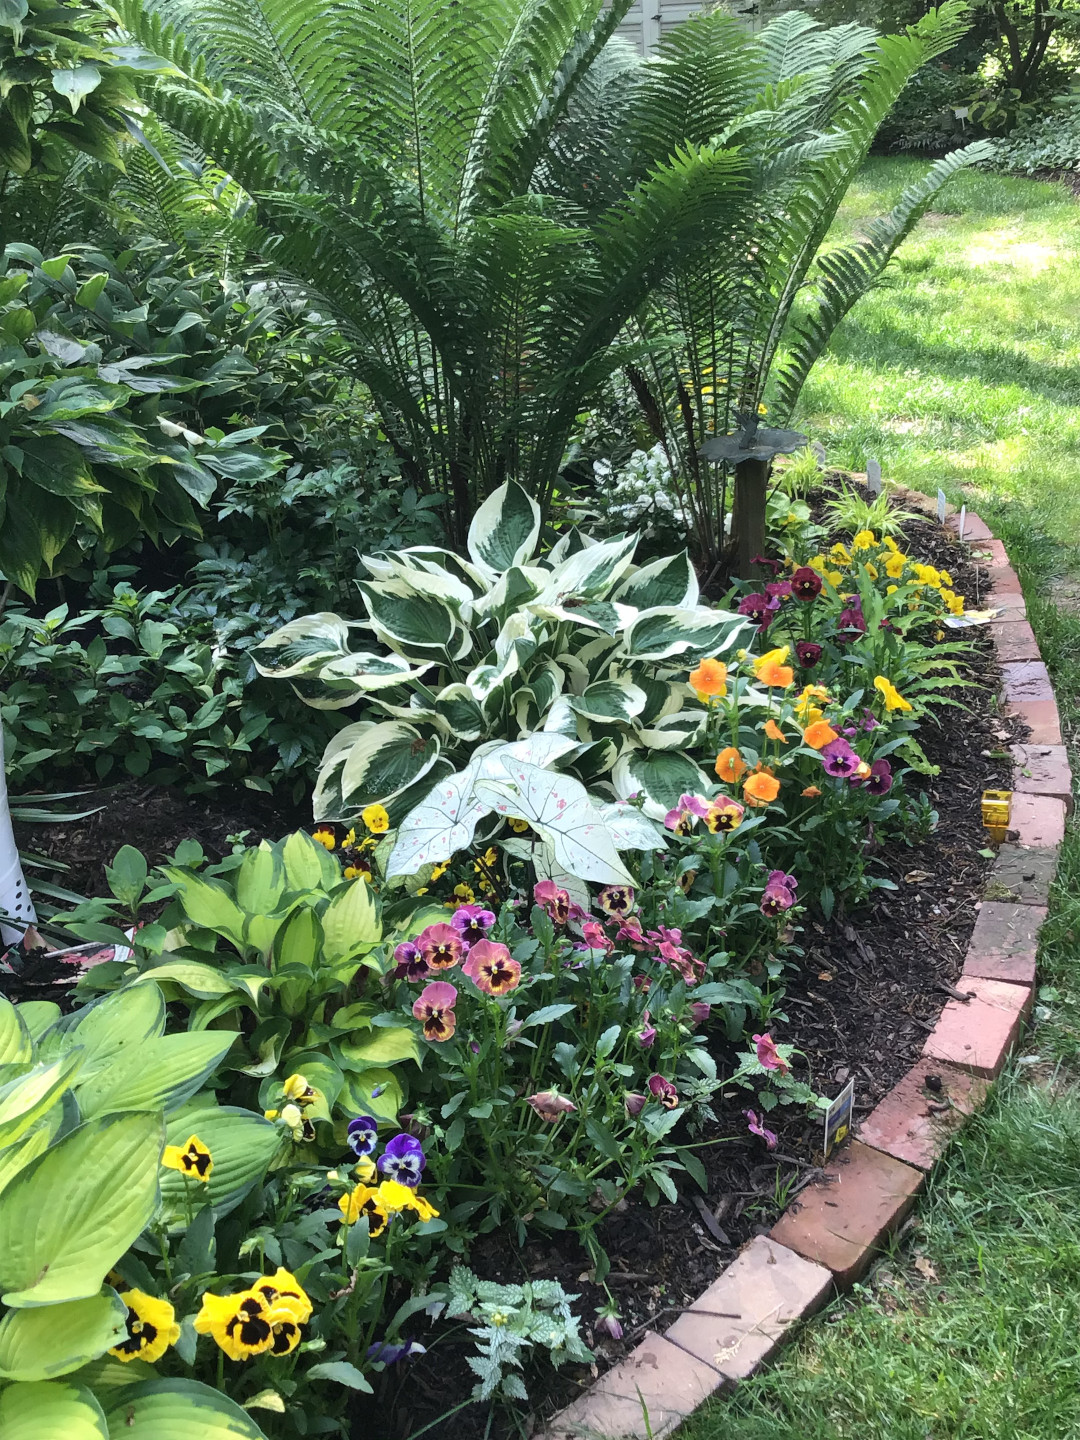 Pansies in a wide range of colors at the edge of a bed filled with hostas and ferns